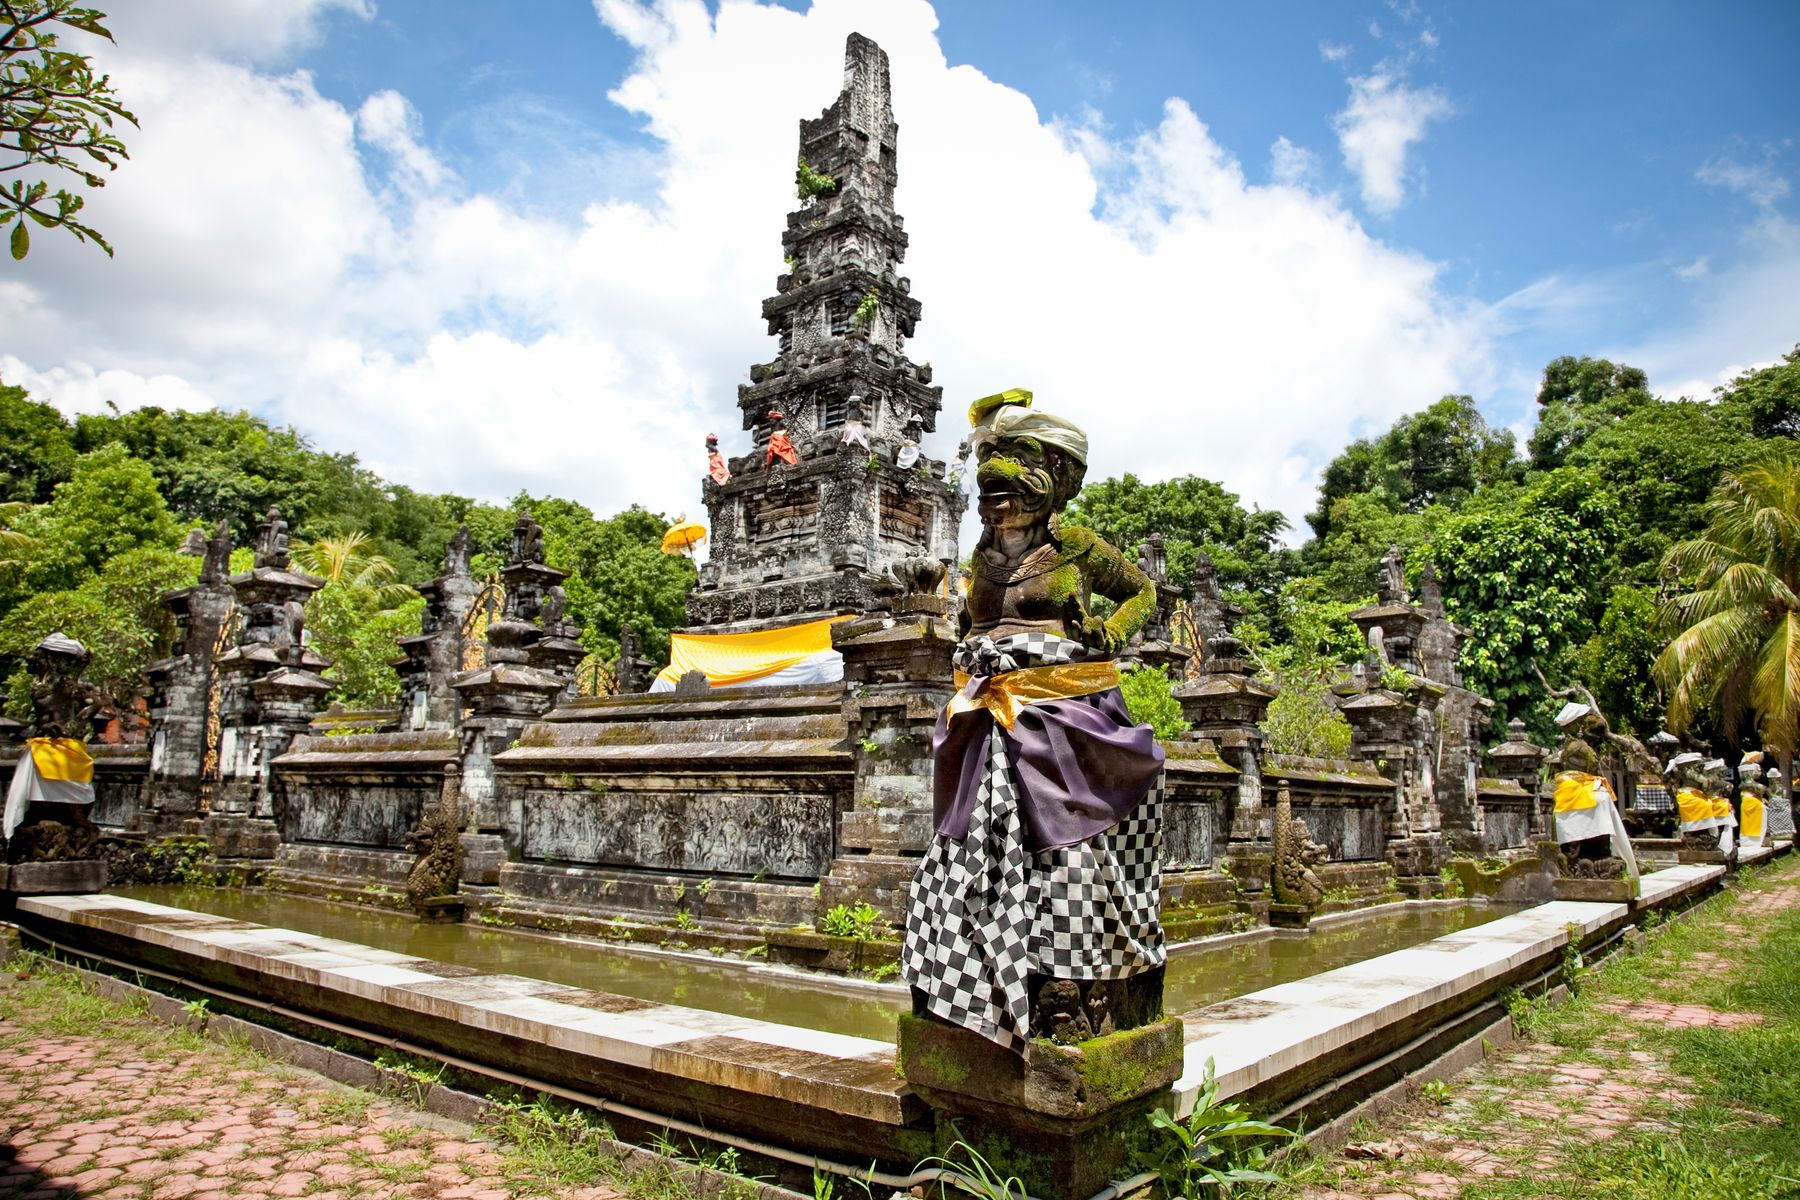 A decorated temple in Bali